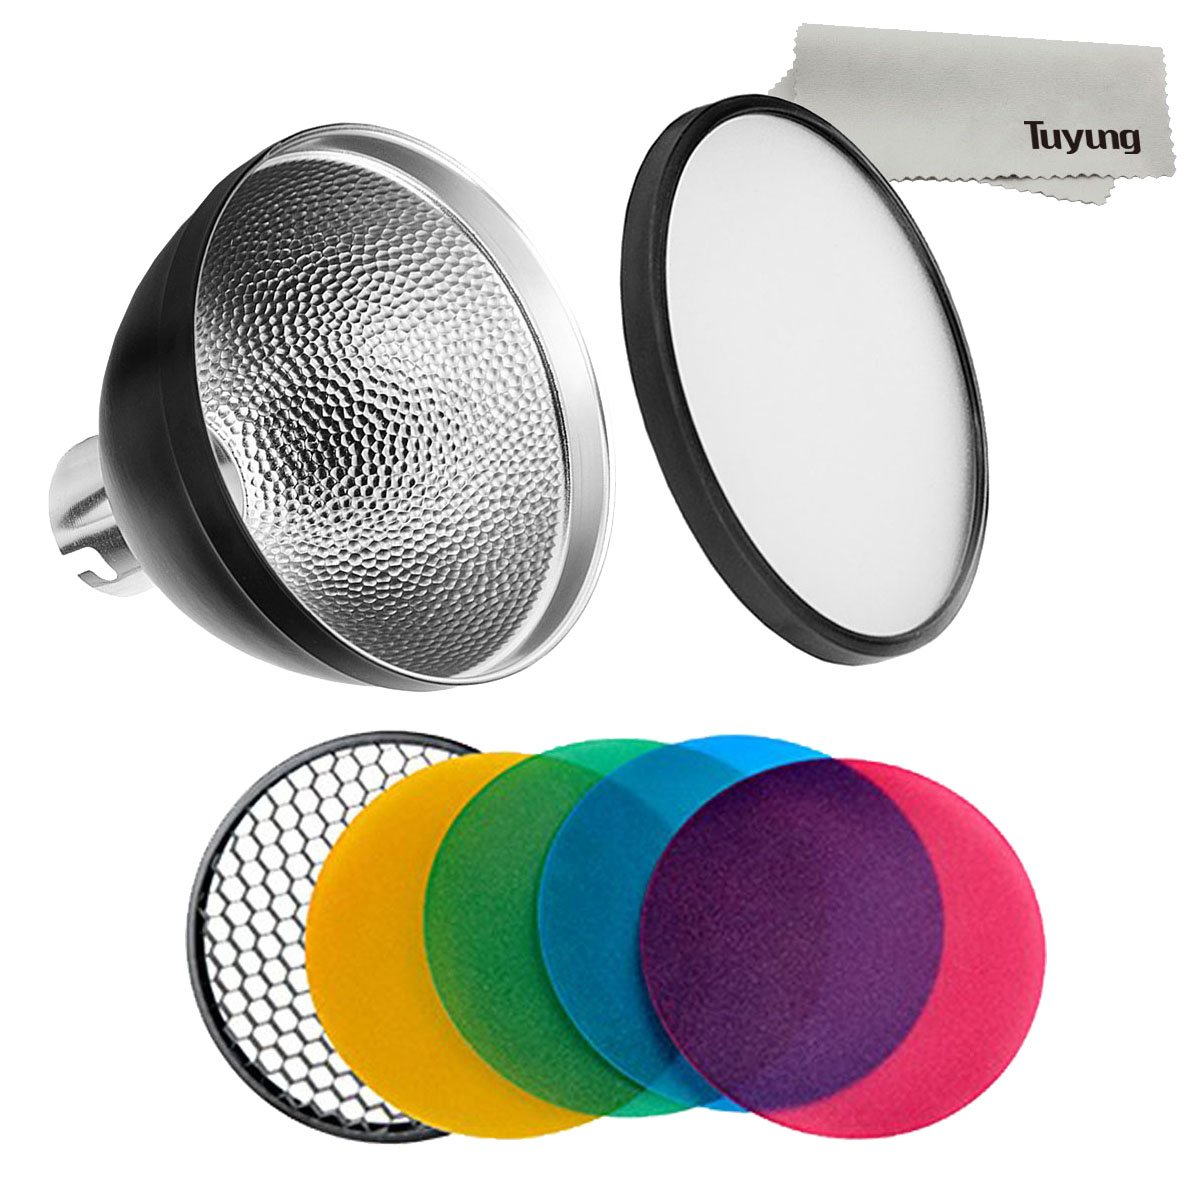 Godox AD-S2 Standard Reflector with Soft Diffuser and ad-s11 Witstro Flash Speedlite Accessories for Godox AD200 AD360 AD360II Flashes ADS2+ADS11